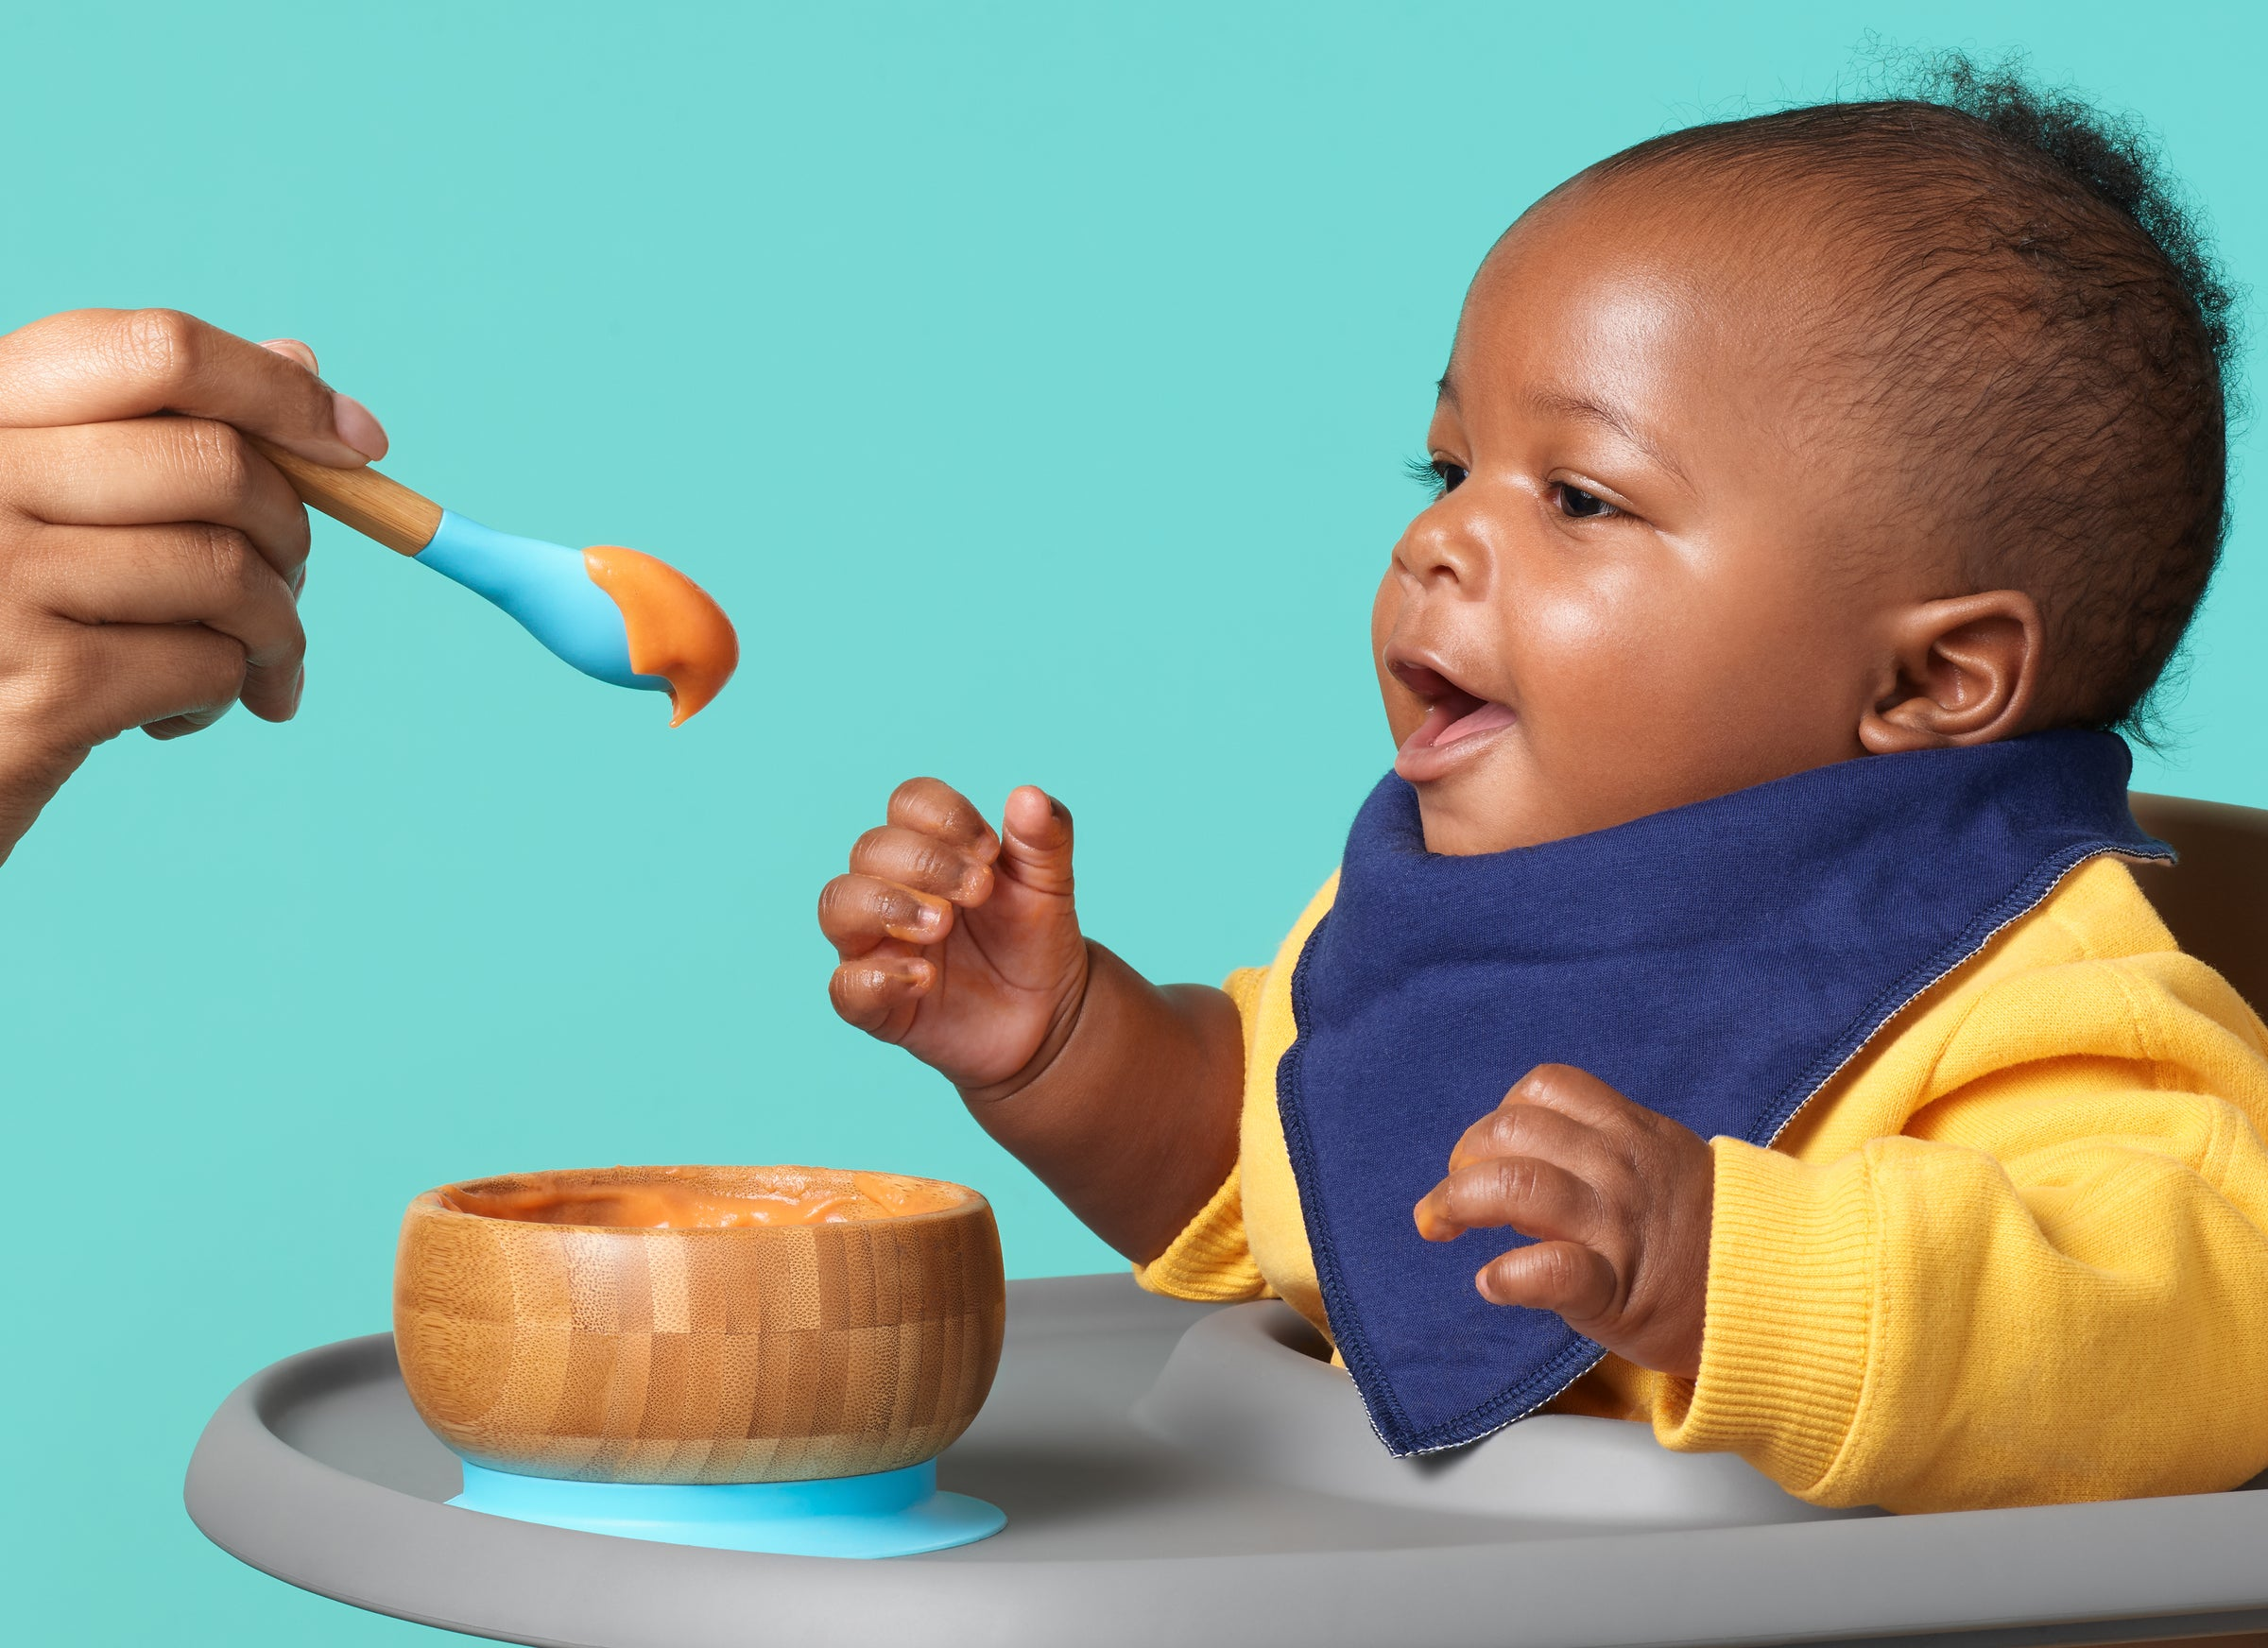 Baby eating food from spoon